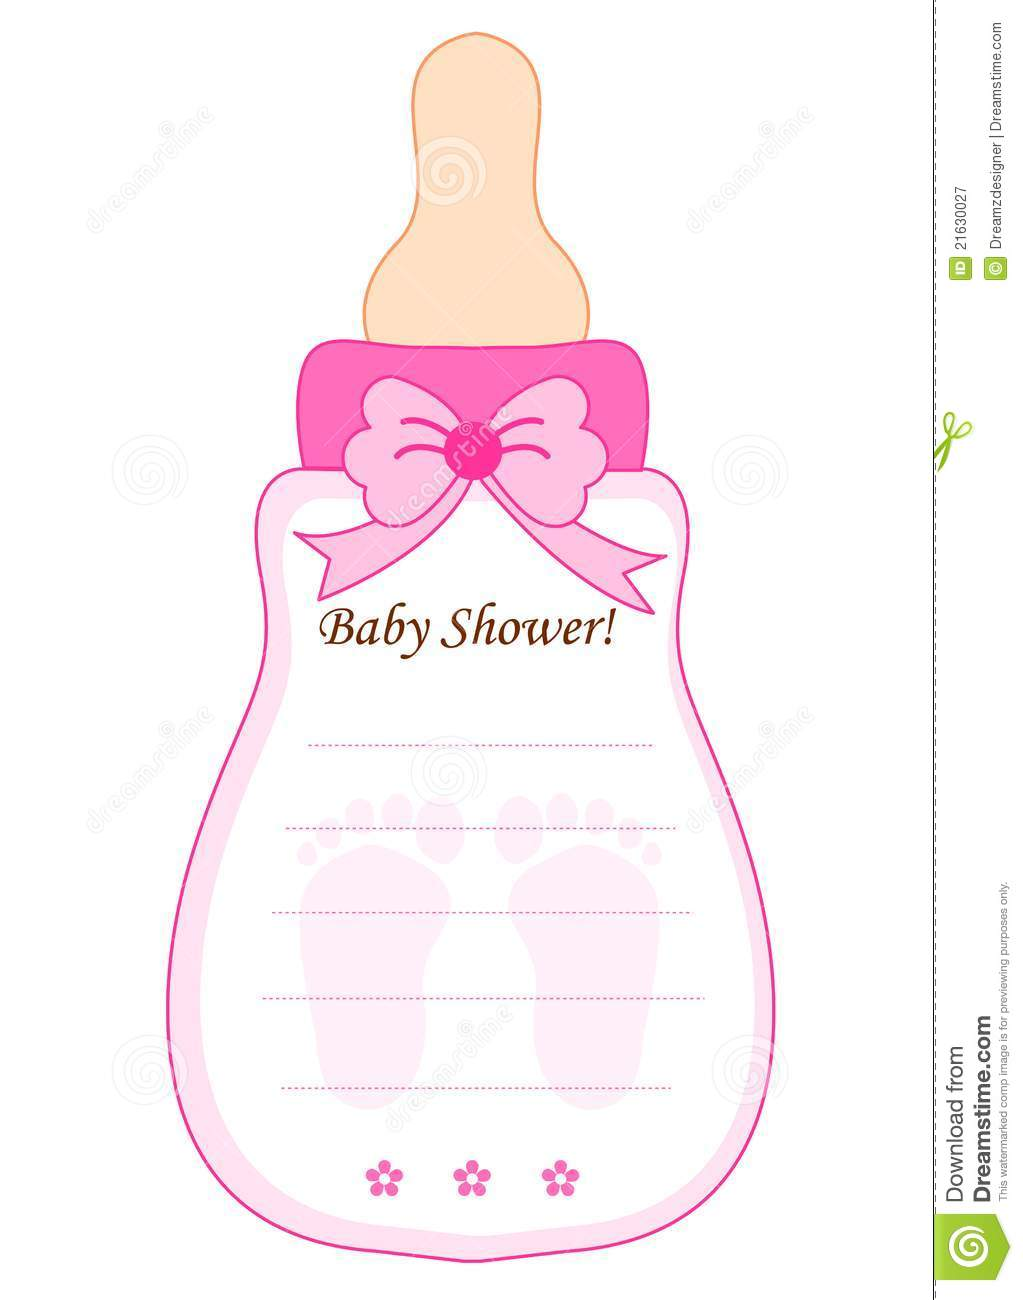 Baby Shower Card For Girls Royalty Free Stock Photography - Image